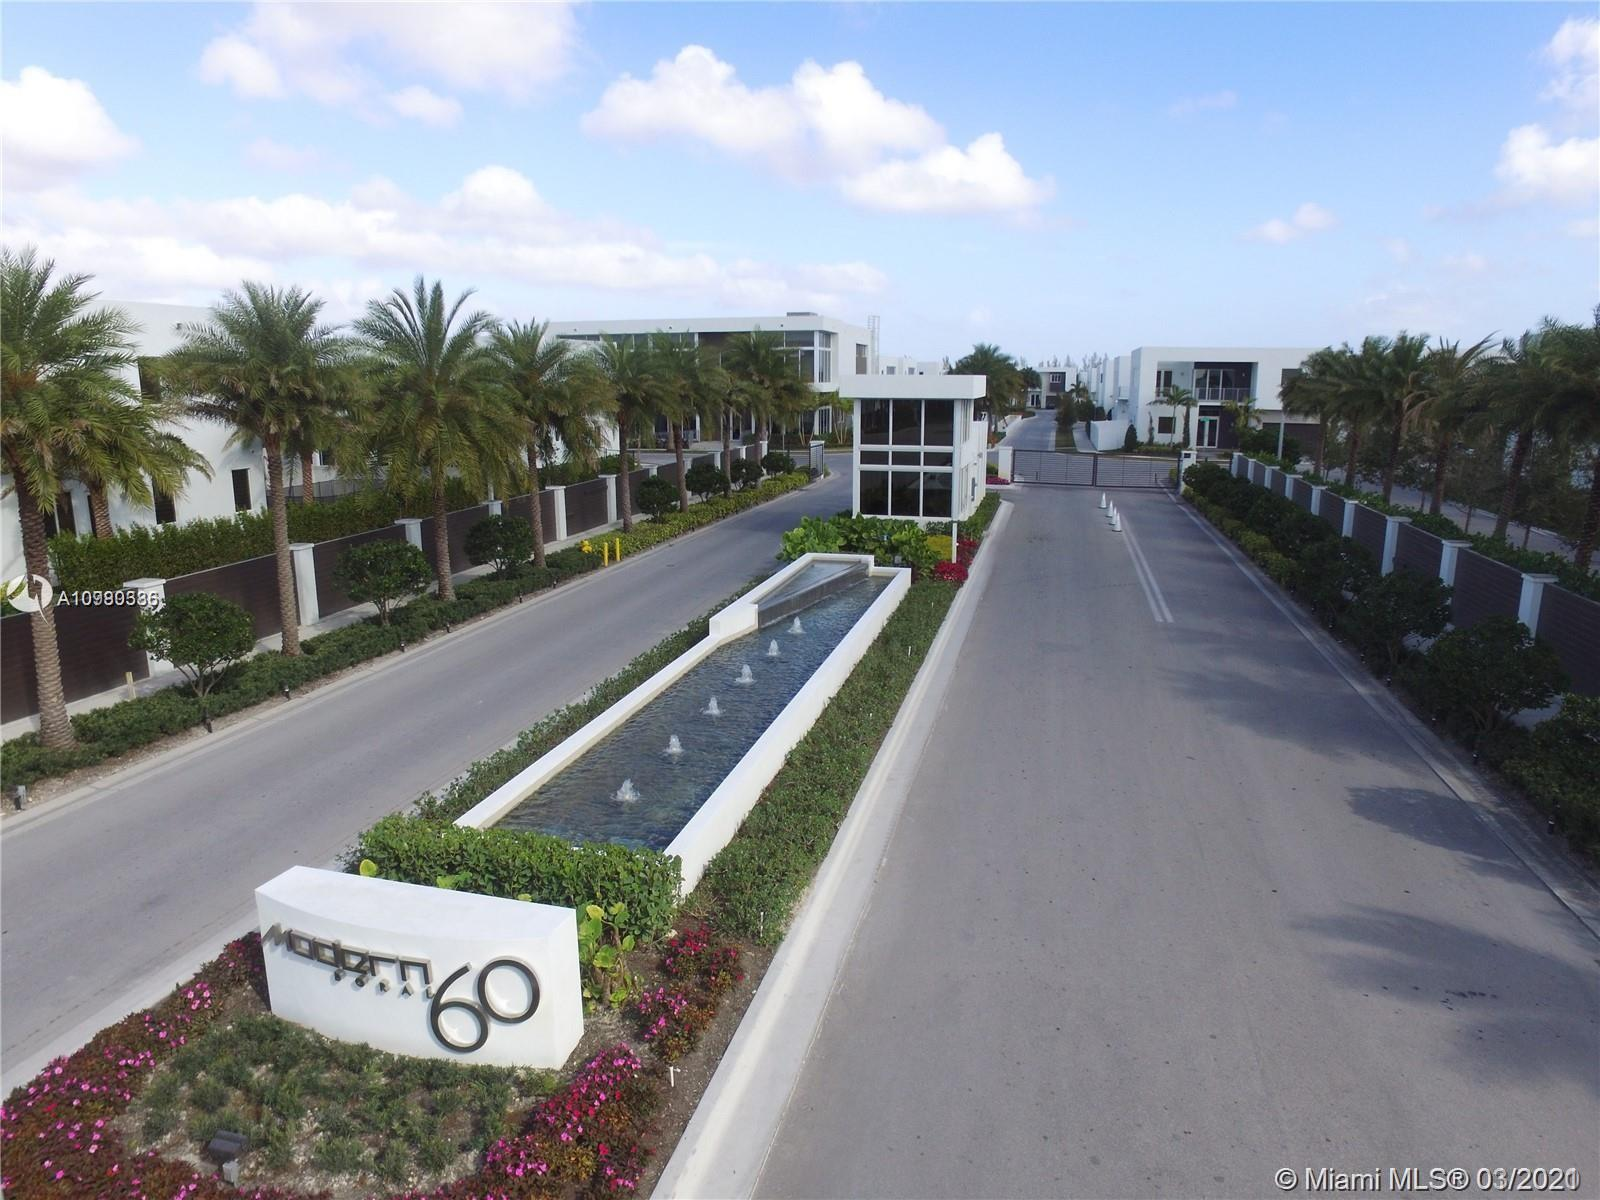 Doral Commons Residential - 7625 NW 100th Ave, Doral, FL 33178